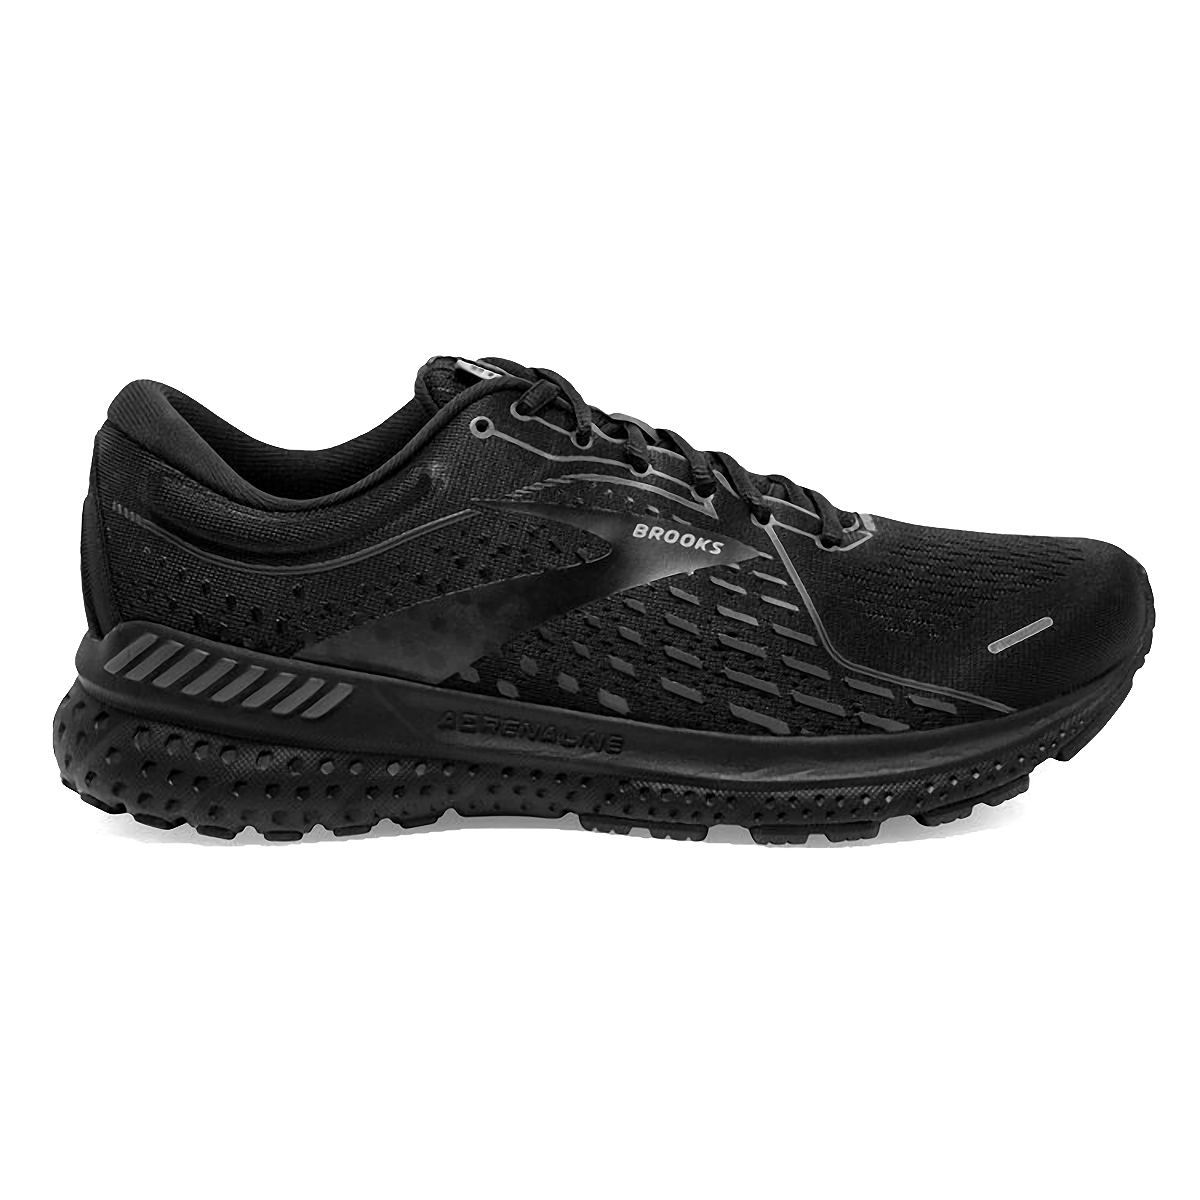 Men's Brooks Adrenaline GTS 21 Running Shoe - Color: Black/Black/Ebony - Size: 7 - Width: Regular, Black/Black/Ebony, large, image 1